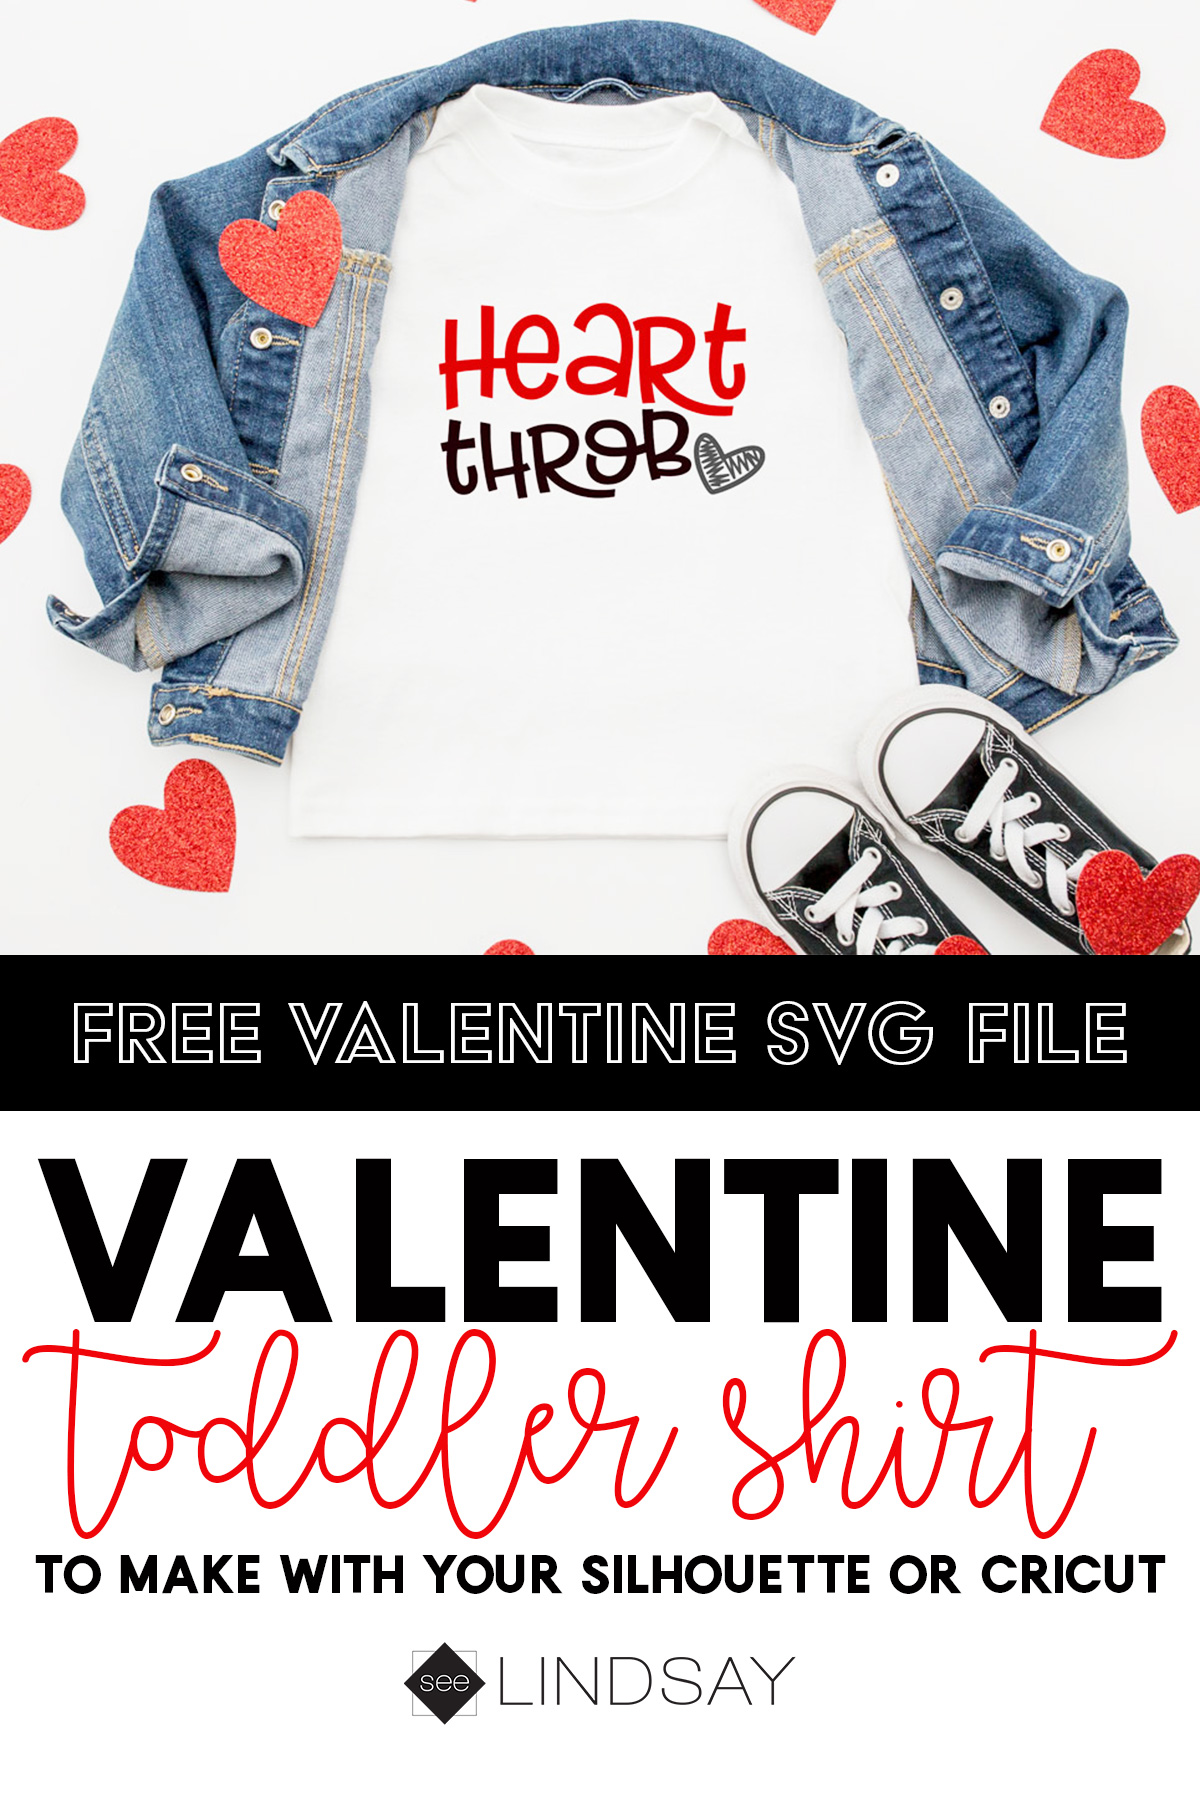 Custom T Shirt For Valentines Day Free Heart Throb Svg Seelindsay